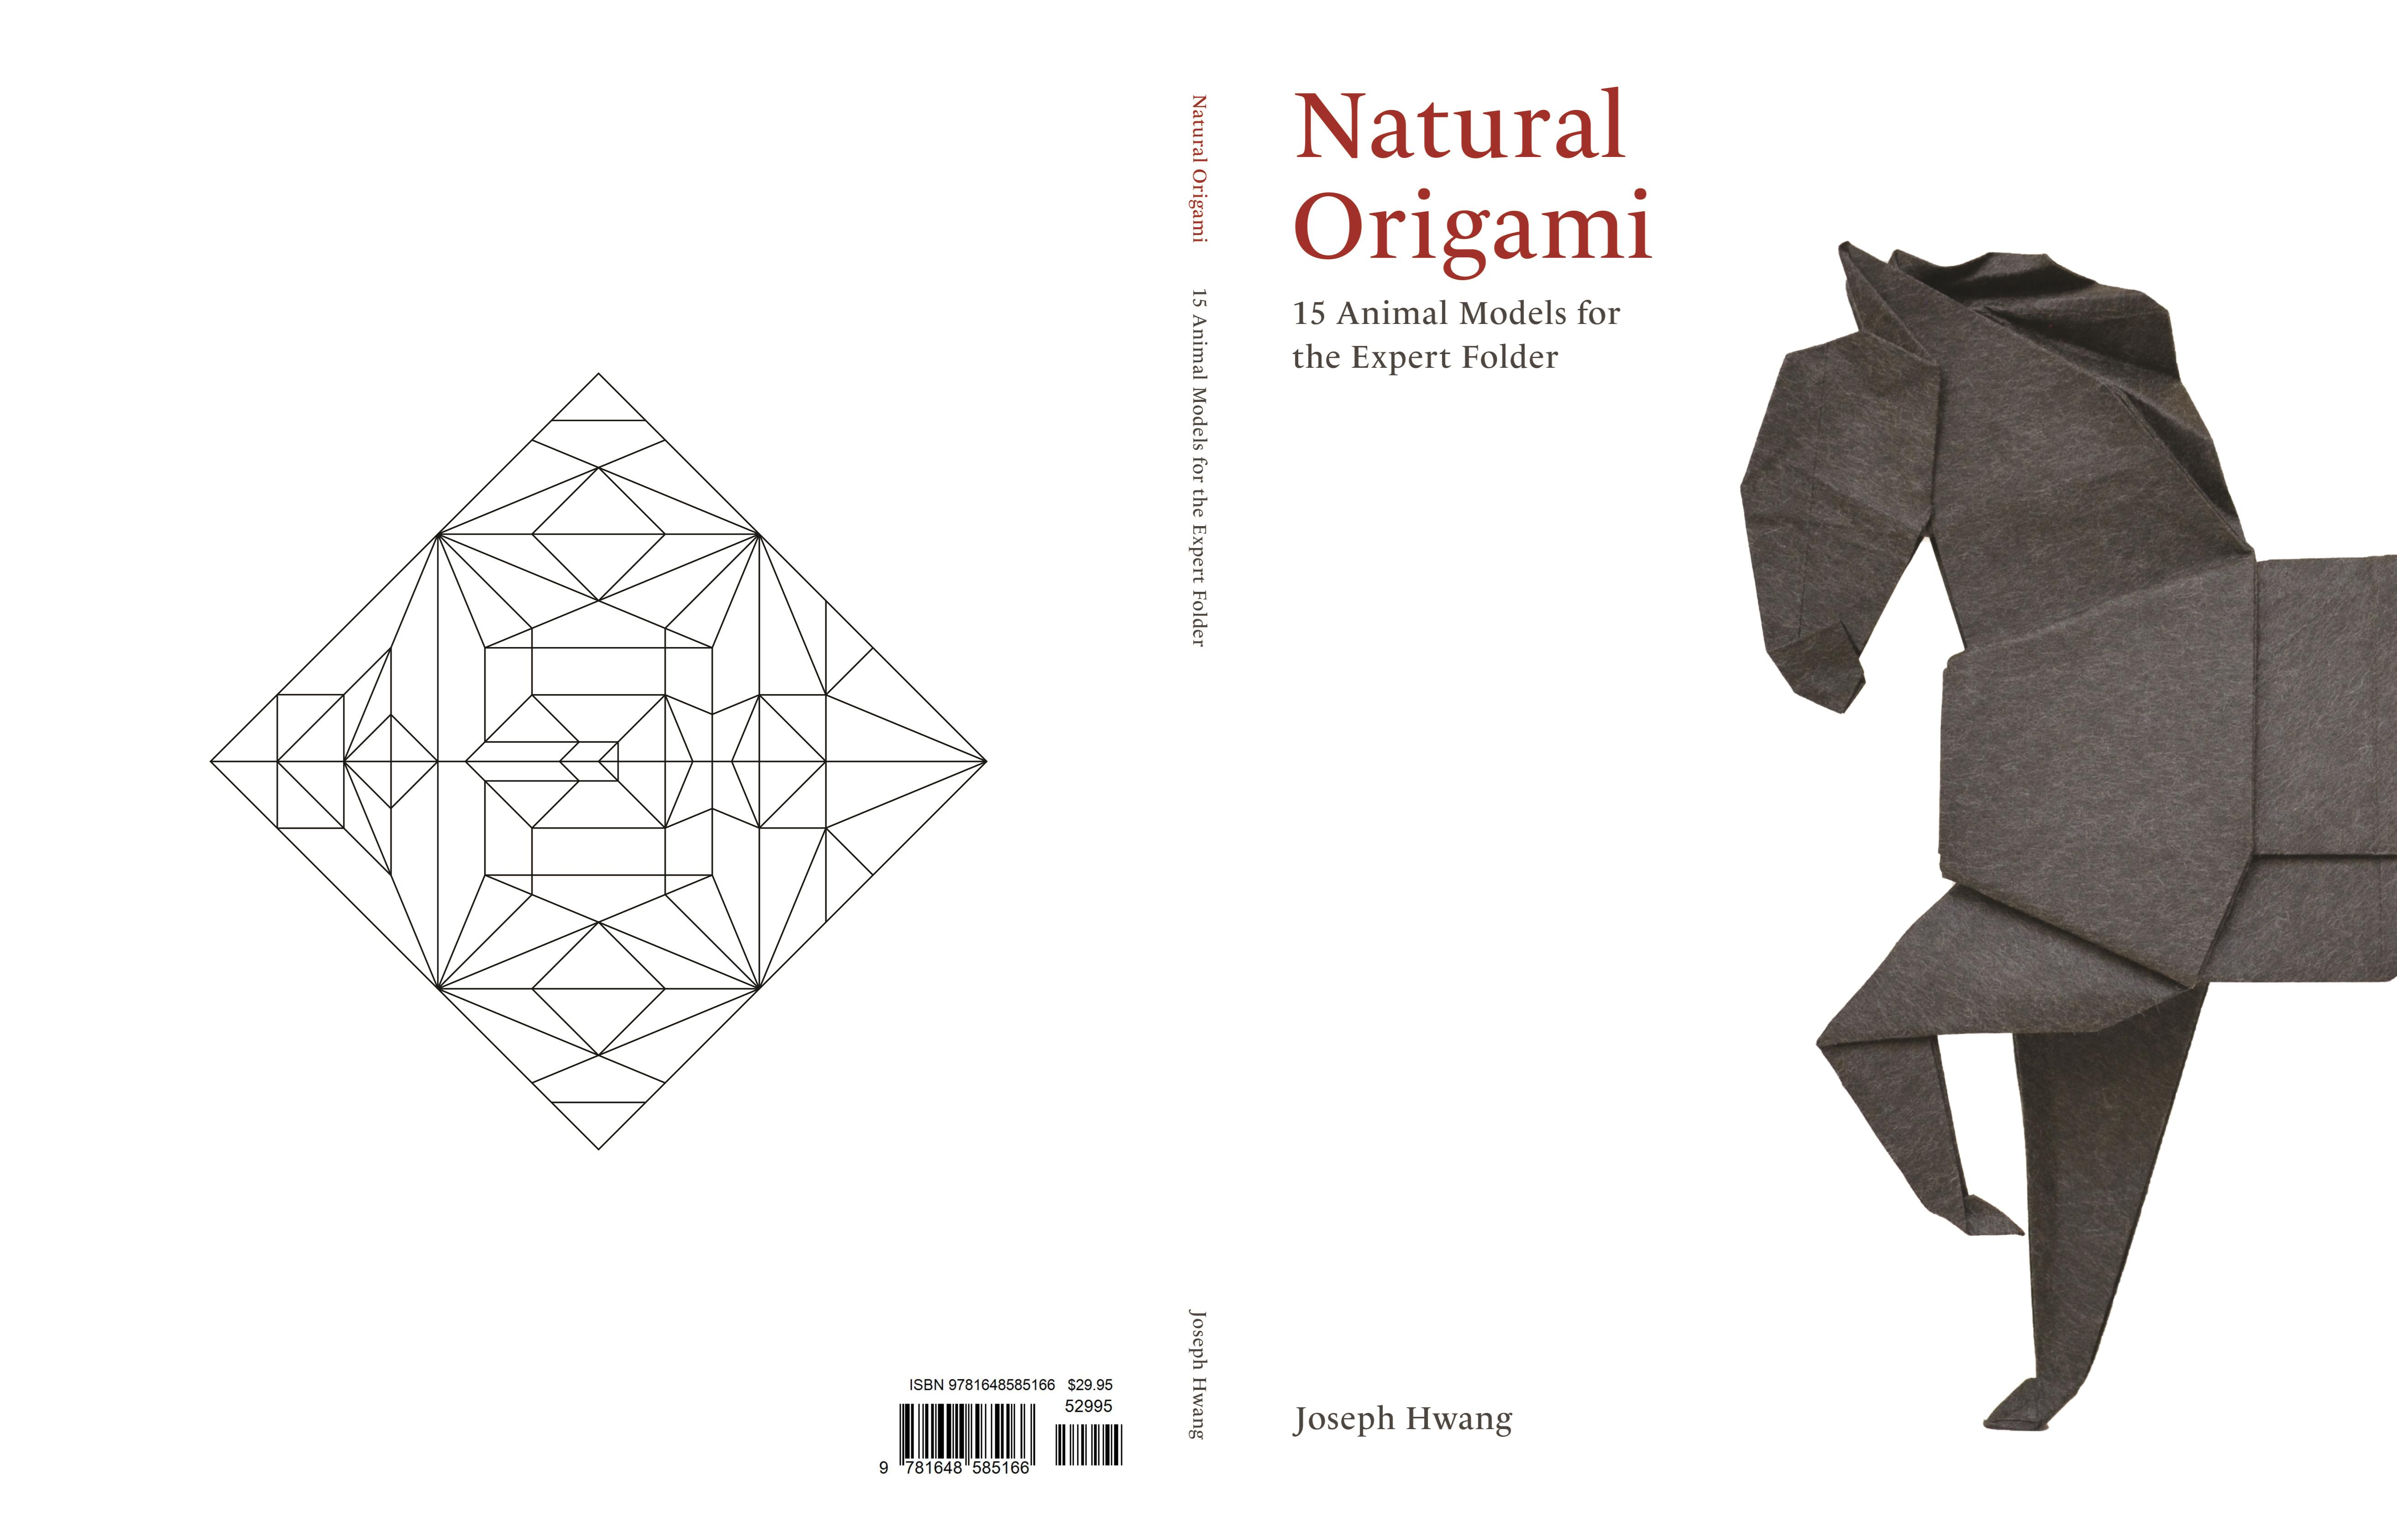 Natural Origami cover image